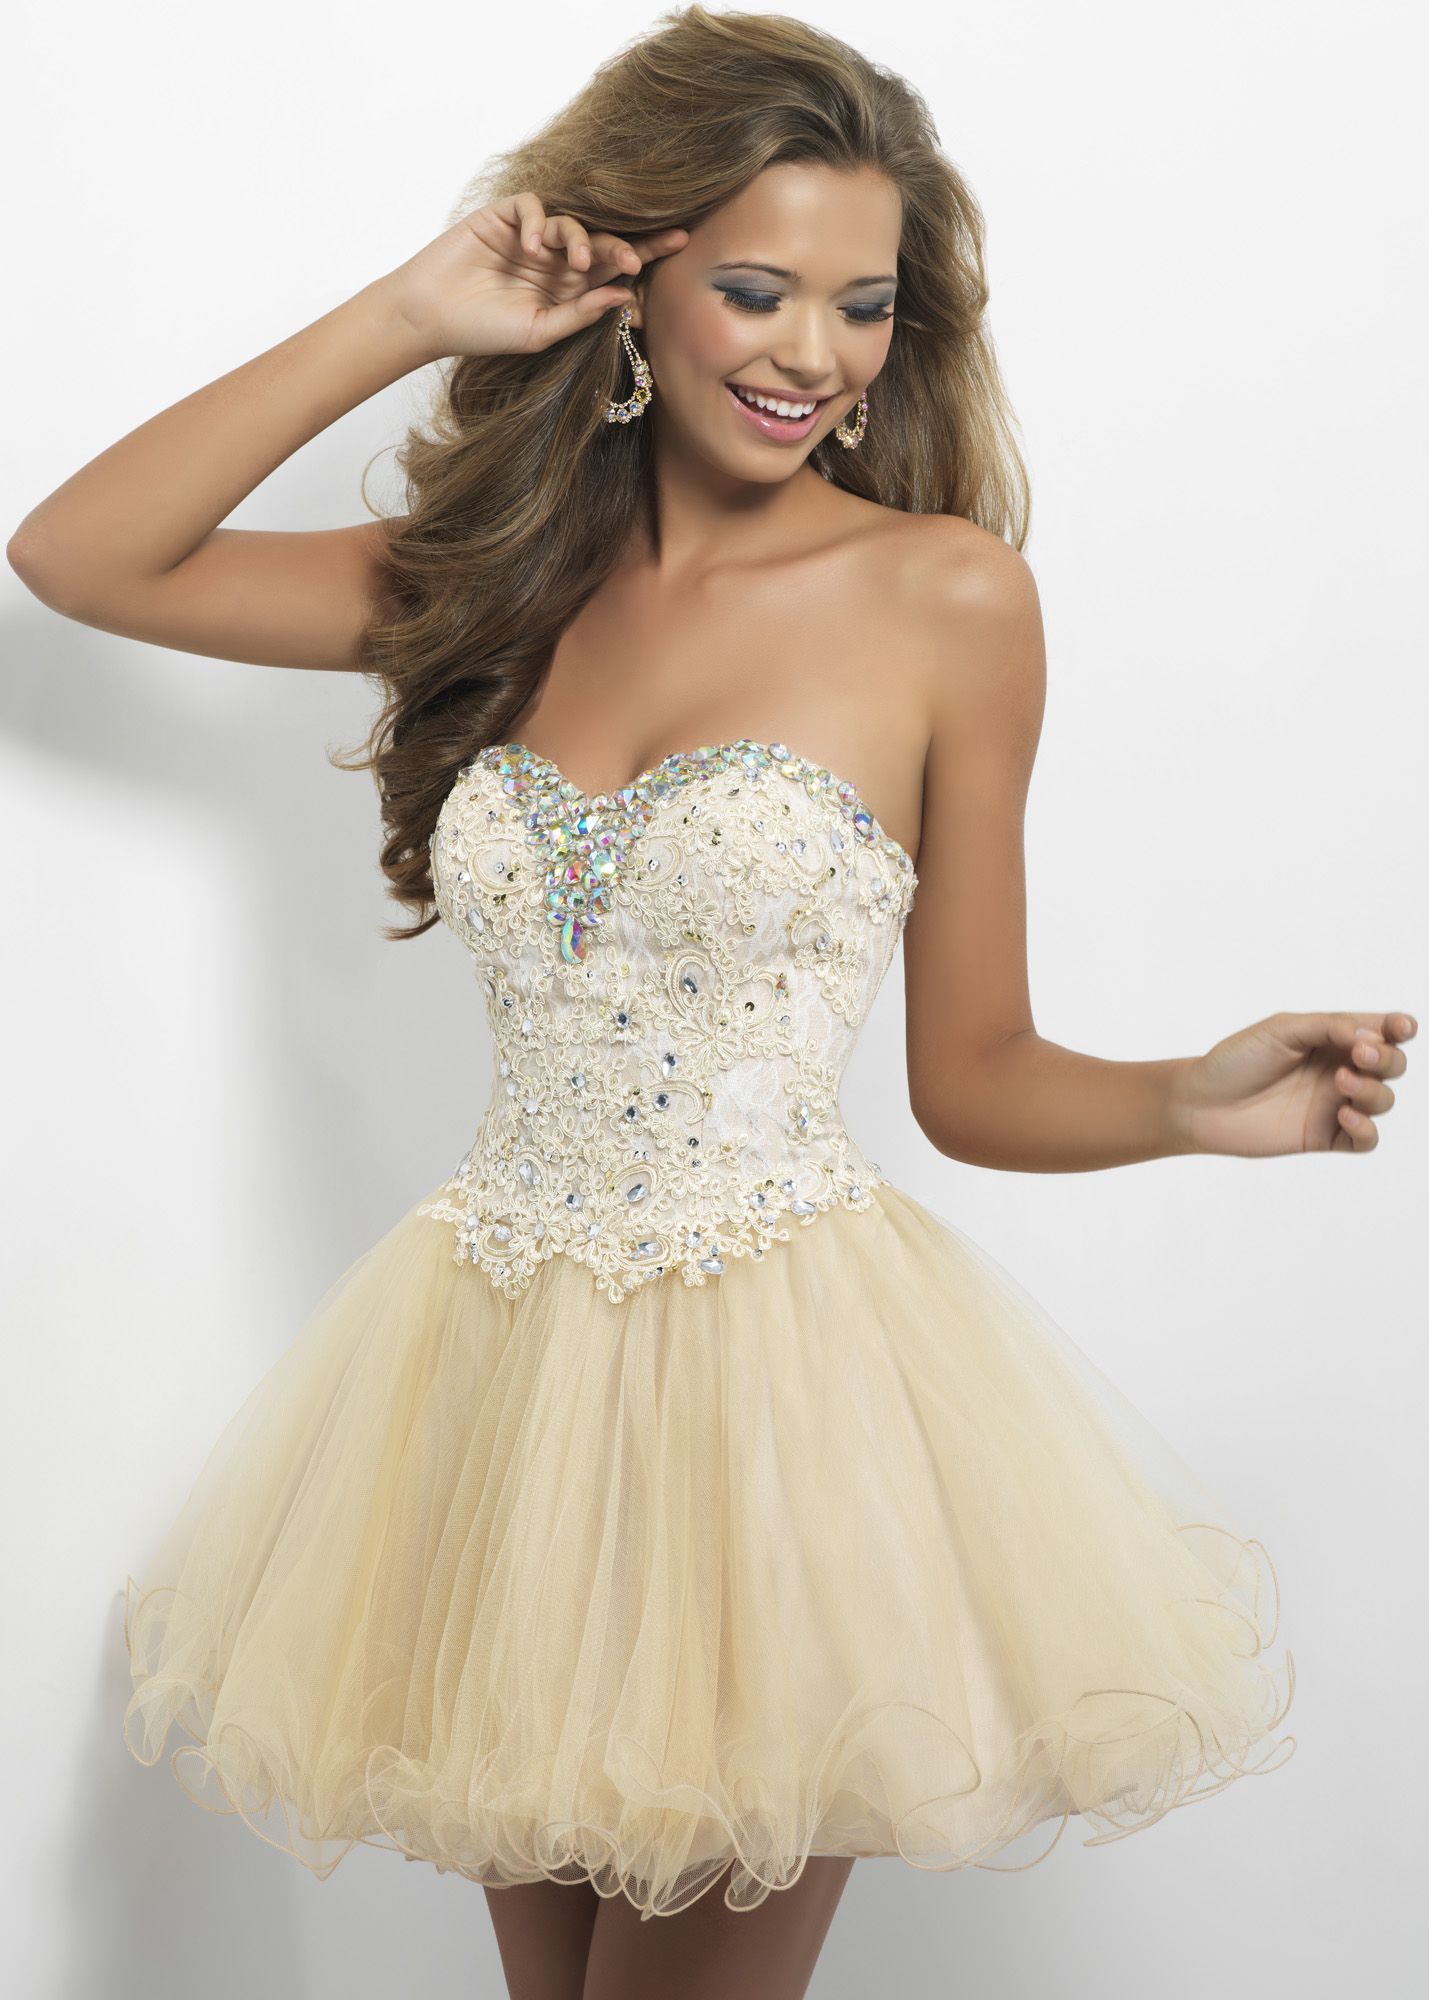 Champagne Strapless Jeweled Top Layered Short Prom Dress | short ...